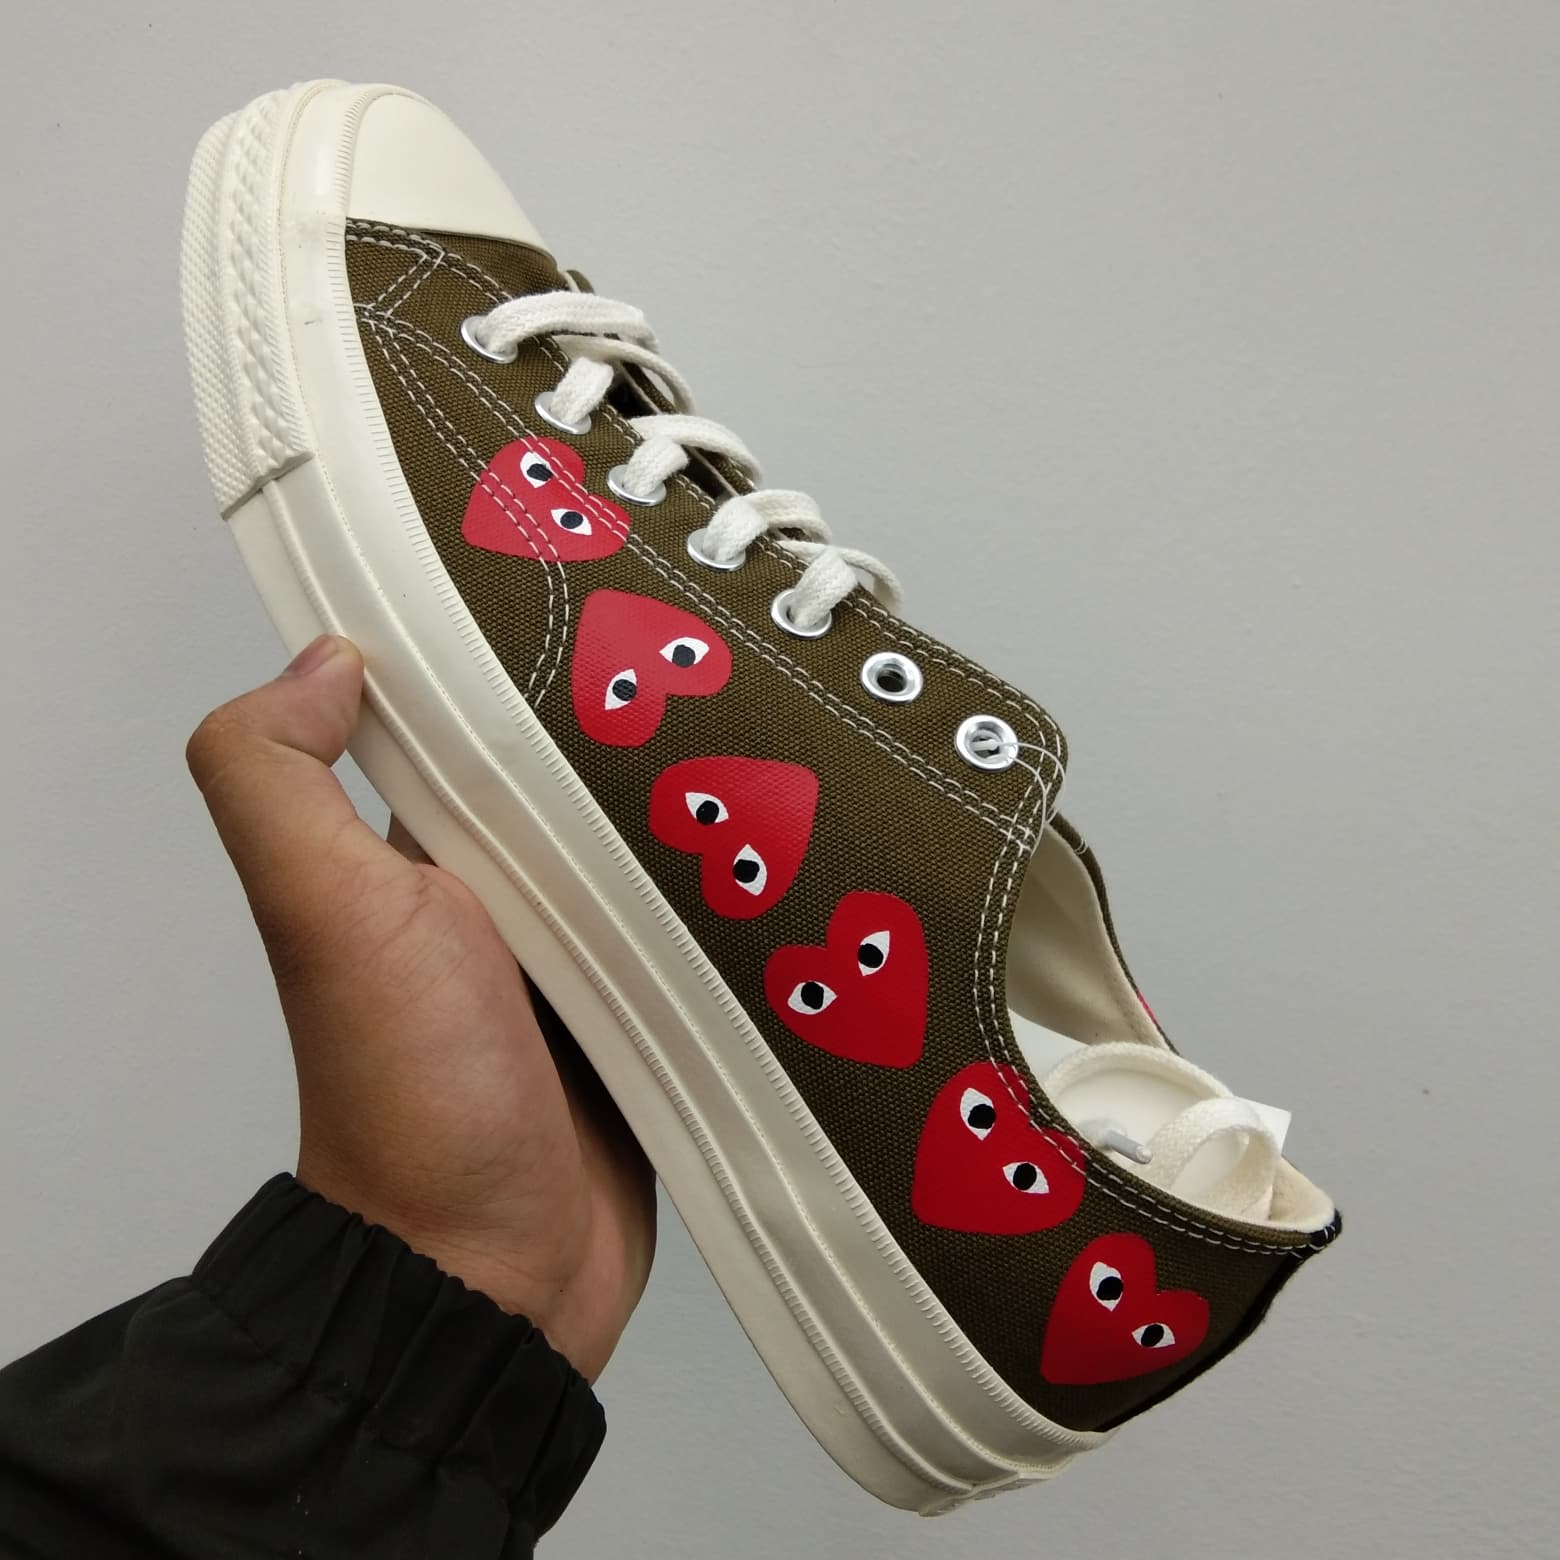 Jual Converse Comme Des Garcons Low White Multi Heart Kota Batam Snkrsflash | Tokopedia